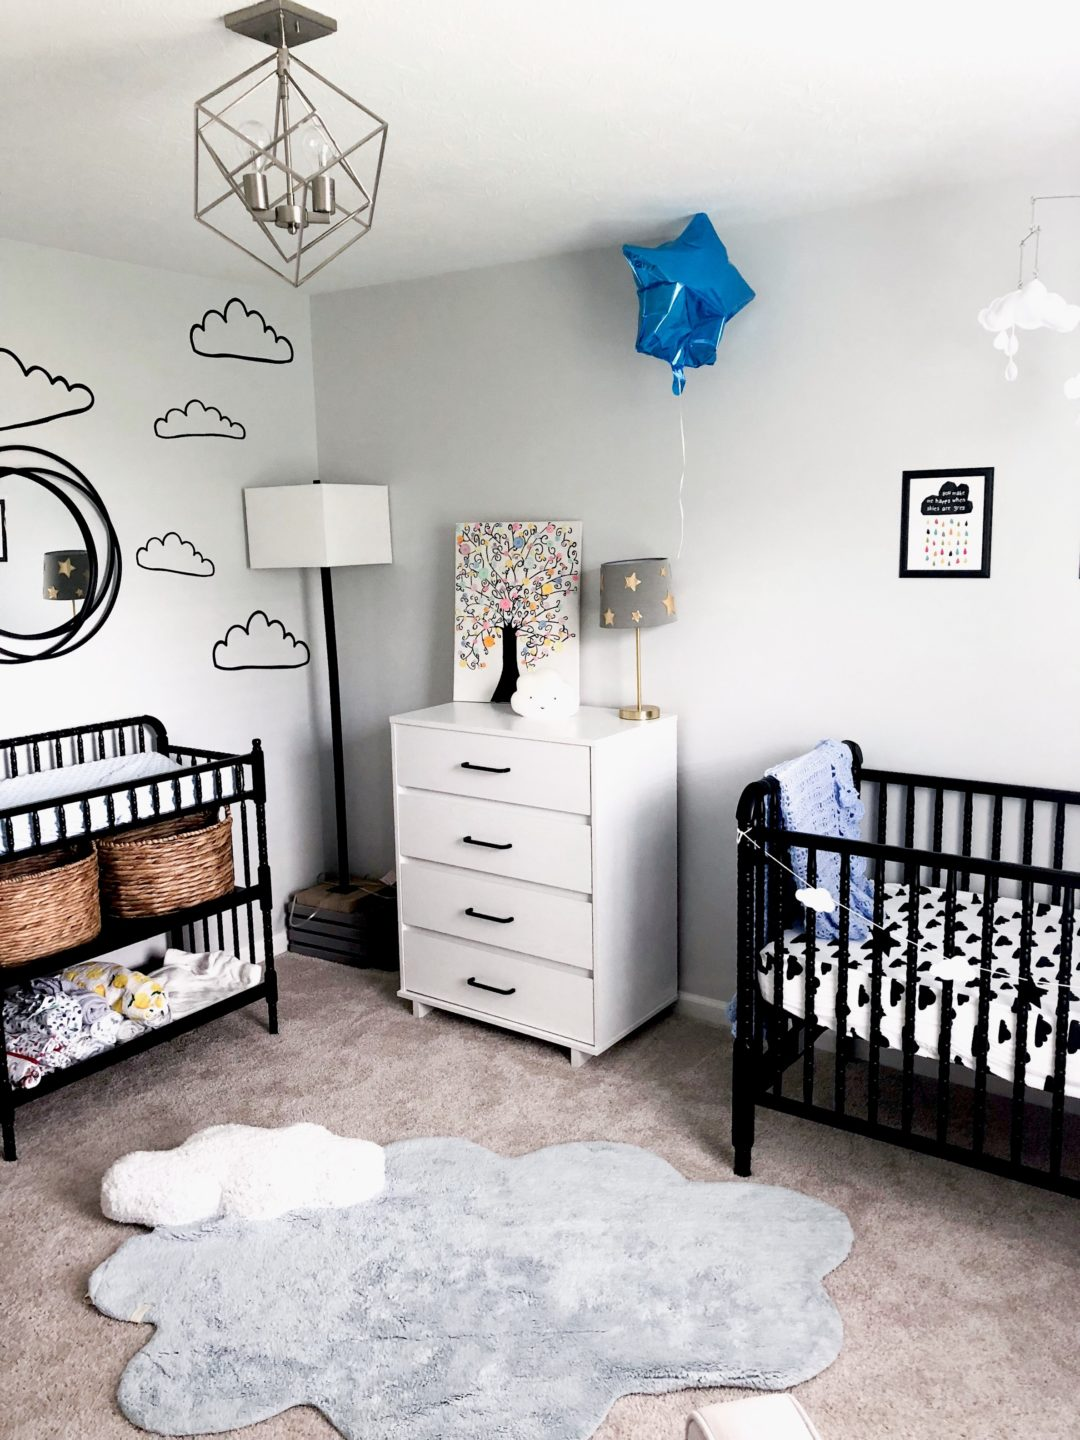 Baby Boy S Nursery Reveal Is Finally Ready To Share It Feels Like We Ve Been Dreaming Creating And Putting Together His Decades